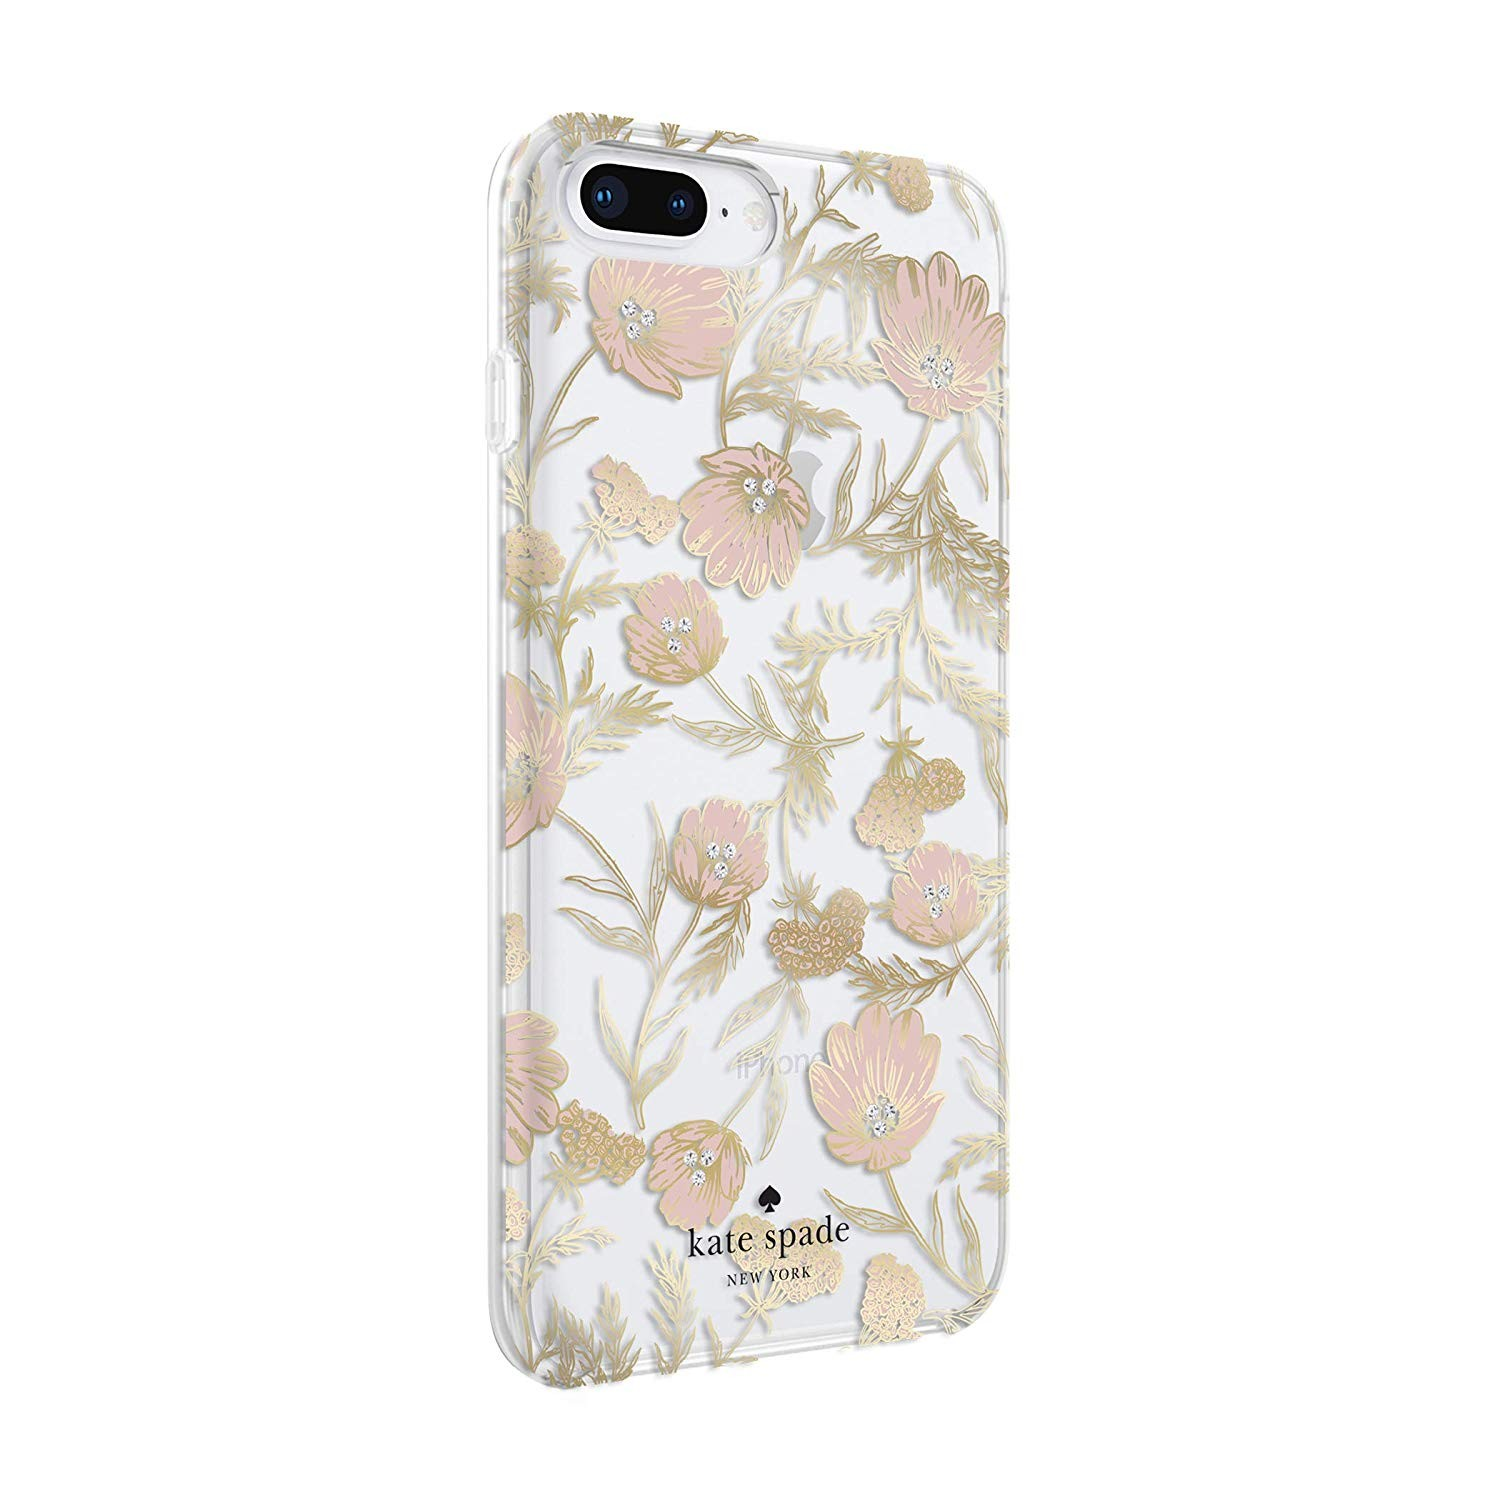 sale retailer 03896 540ae kate spade Flexible Hardshell Case for iPhone 8 Plus/7 Plus - Blossom  Pink/Gold with Gems